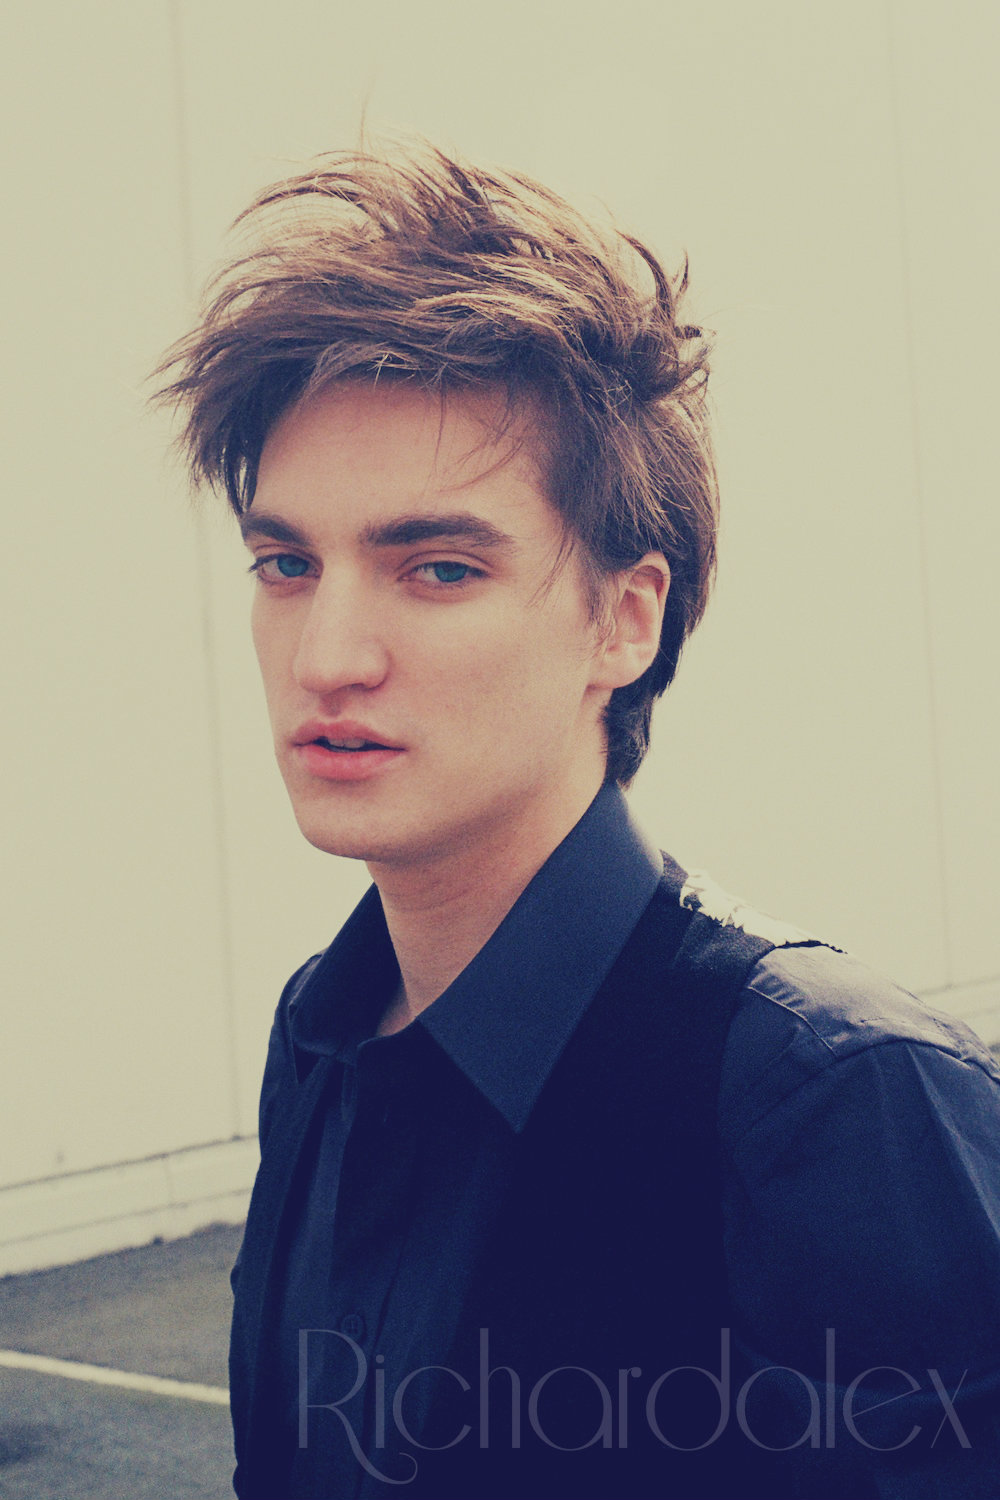 richard harmon wikirichard harmon gif, richard harmon instagram, richard harmon twitter, richard harmon gif hunt, richard harmon tattoo, richard harmon and, richard harmon aerials, richard harmon listal, richard harmon funny, richard harmon scarecrow, richard harmon age, richard harmon gif tumblr, richard harmon icon, richard harmon csi, richard harmon 100, richard harmon wiki, richard harmon imdb, richard harmon funny moments, richard harmon avatar, richard harmon wikipedia